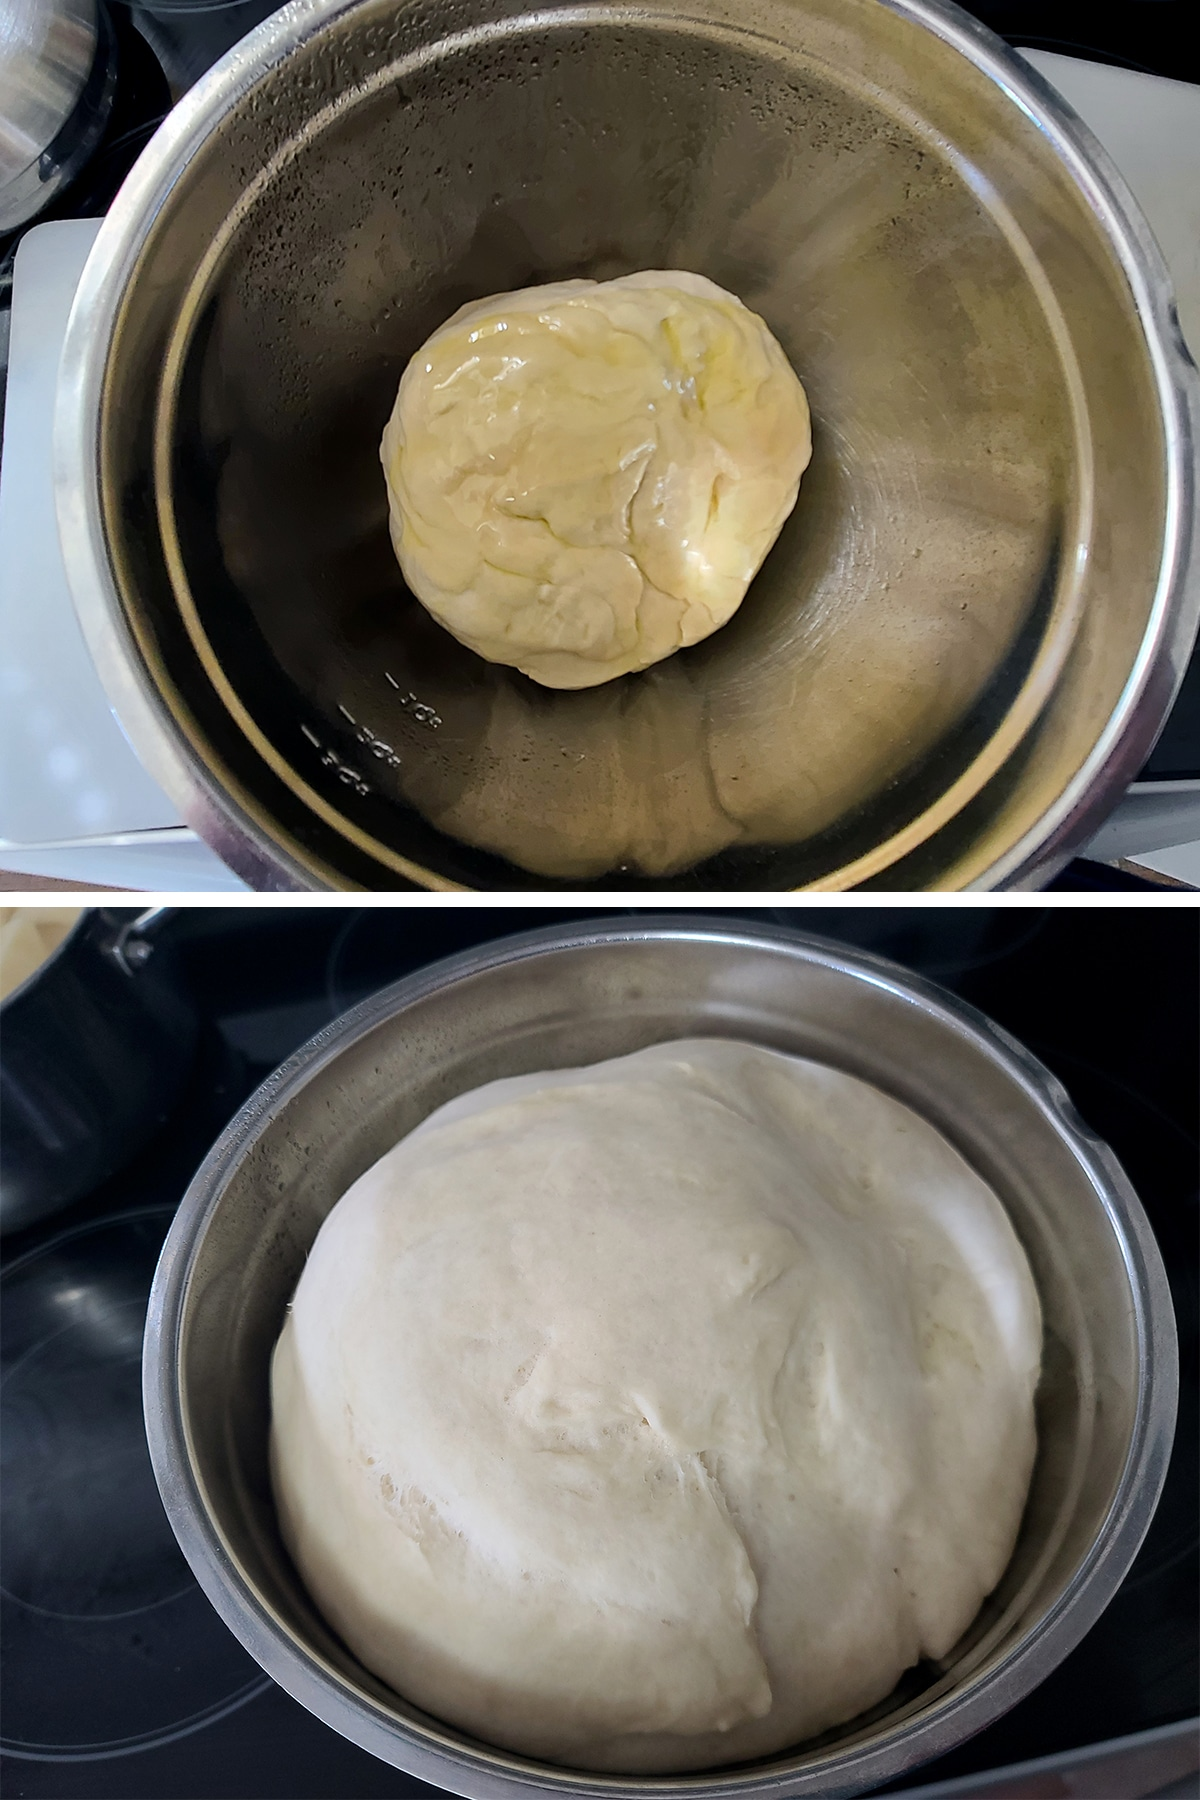 A two part image showing the pizza dough in a greased bowl, before and after the first rise.